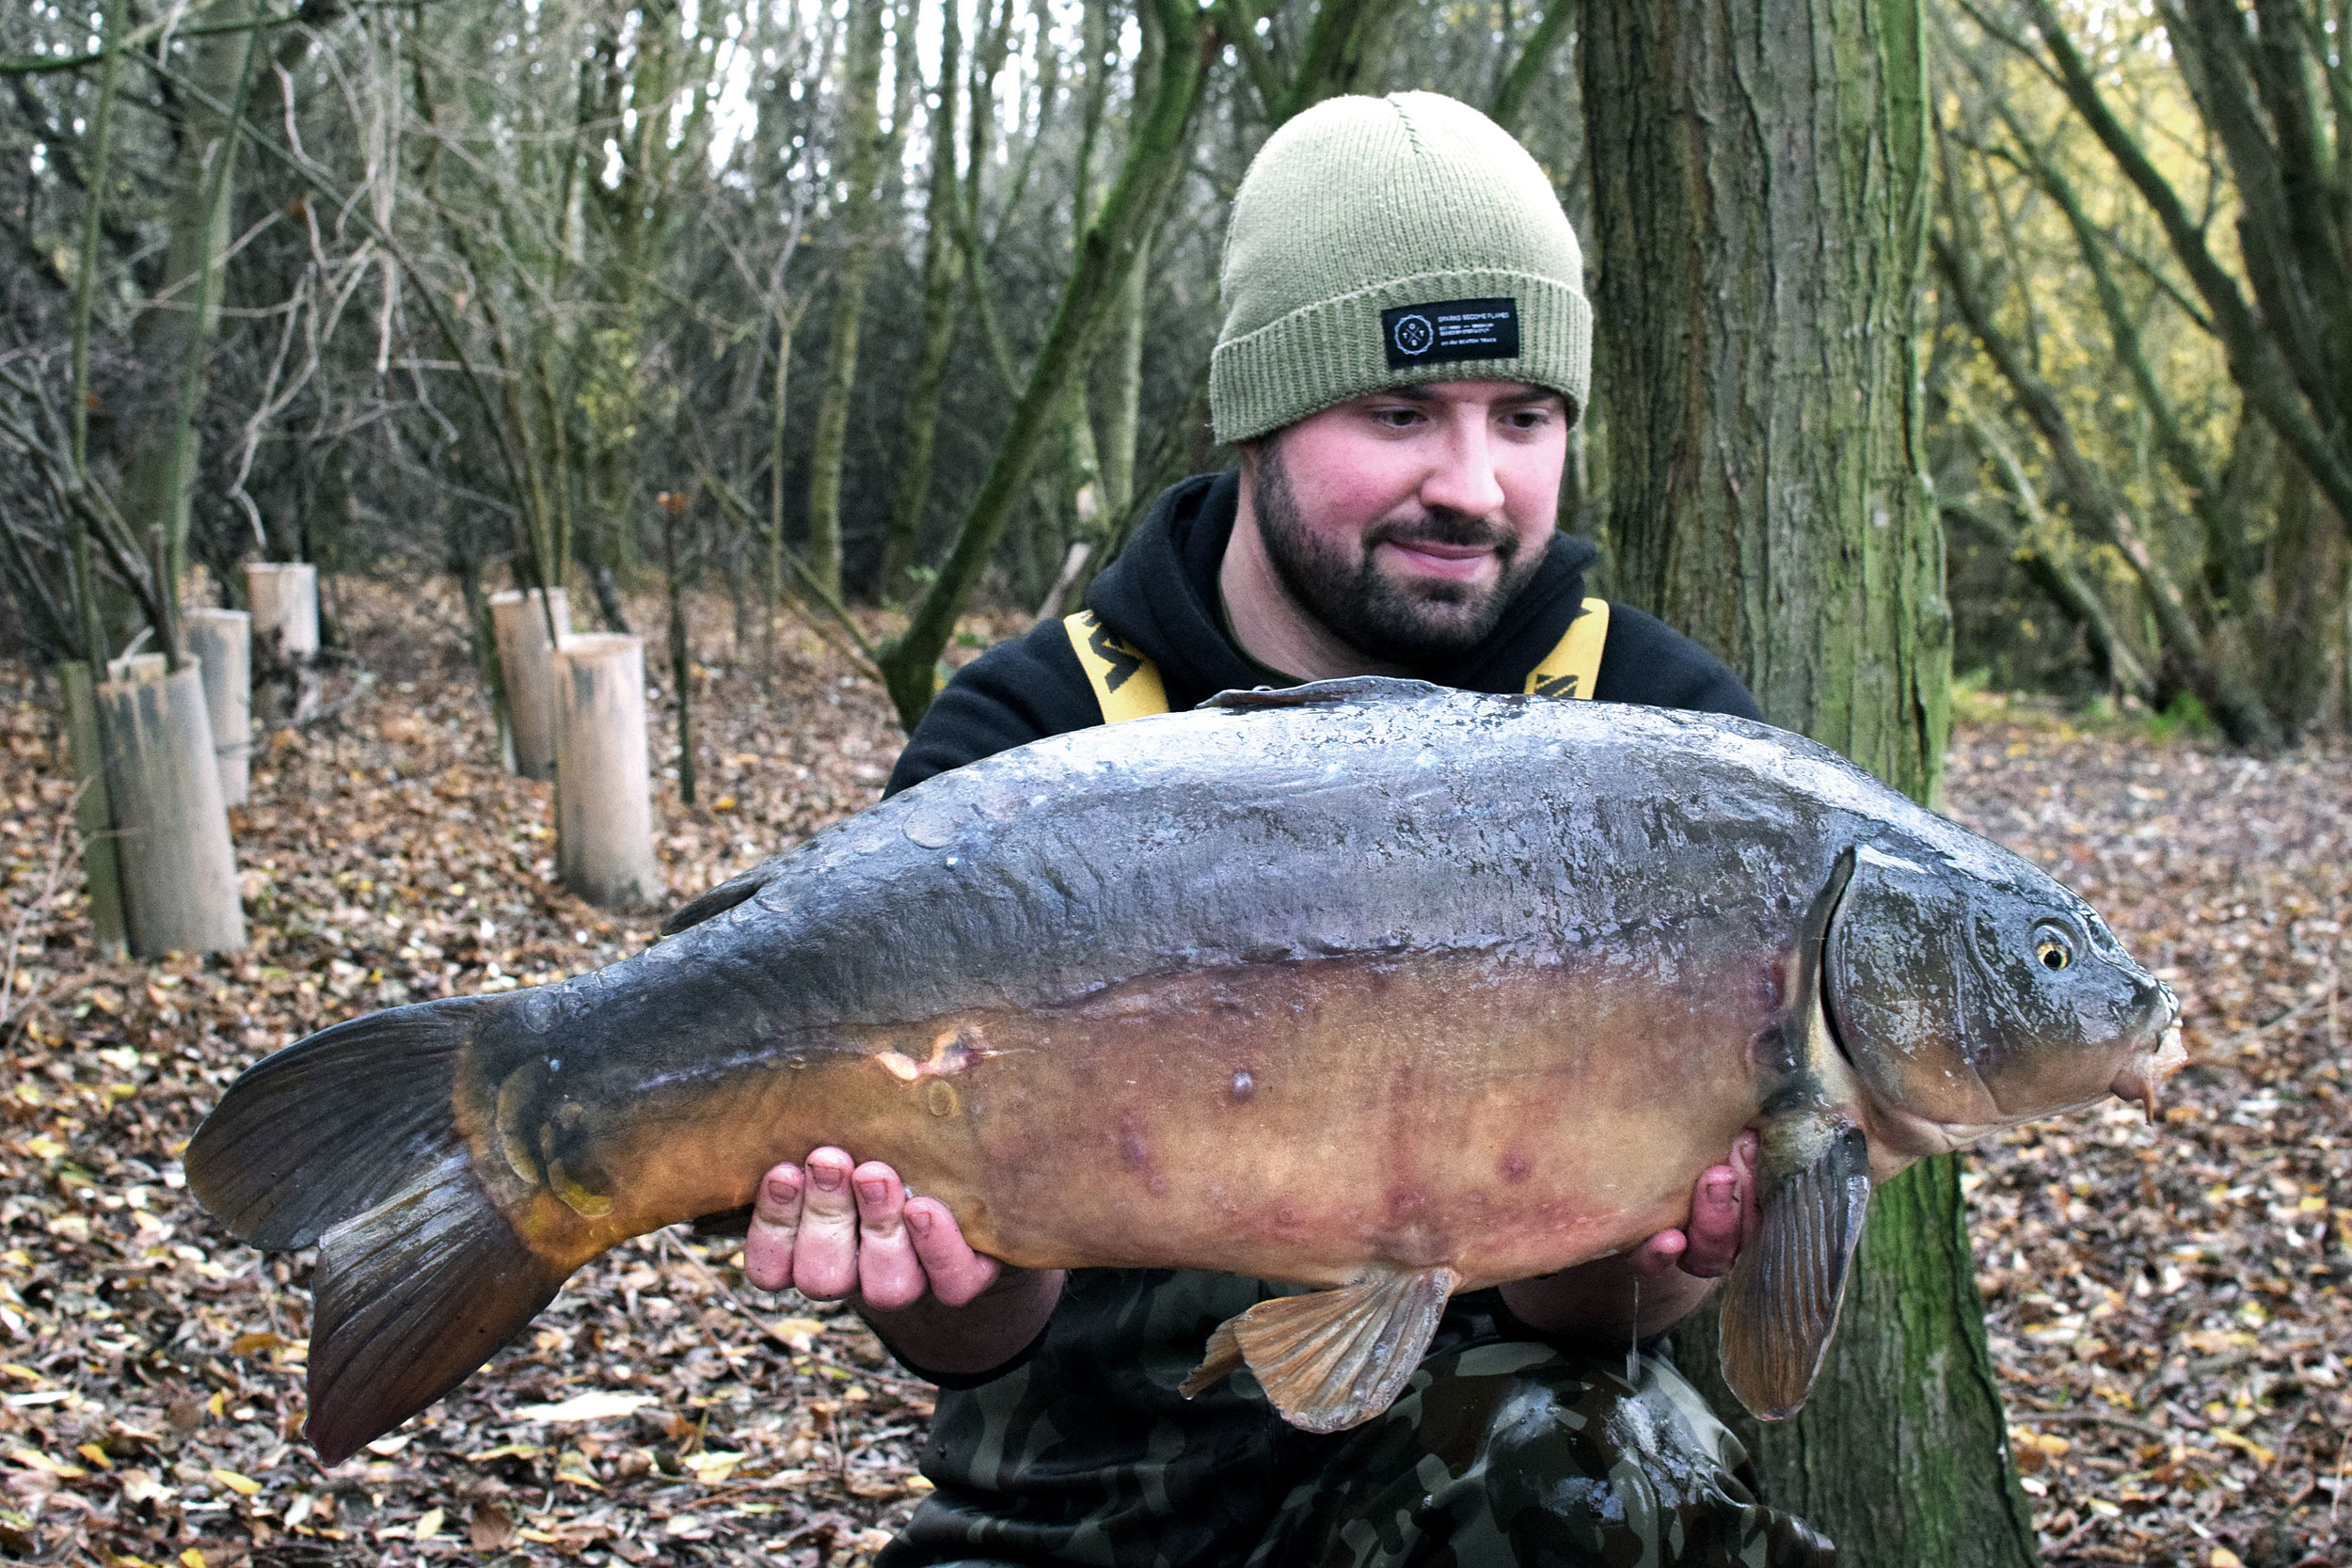 This 22lb mirror was my second largest of the session